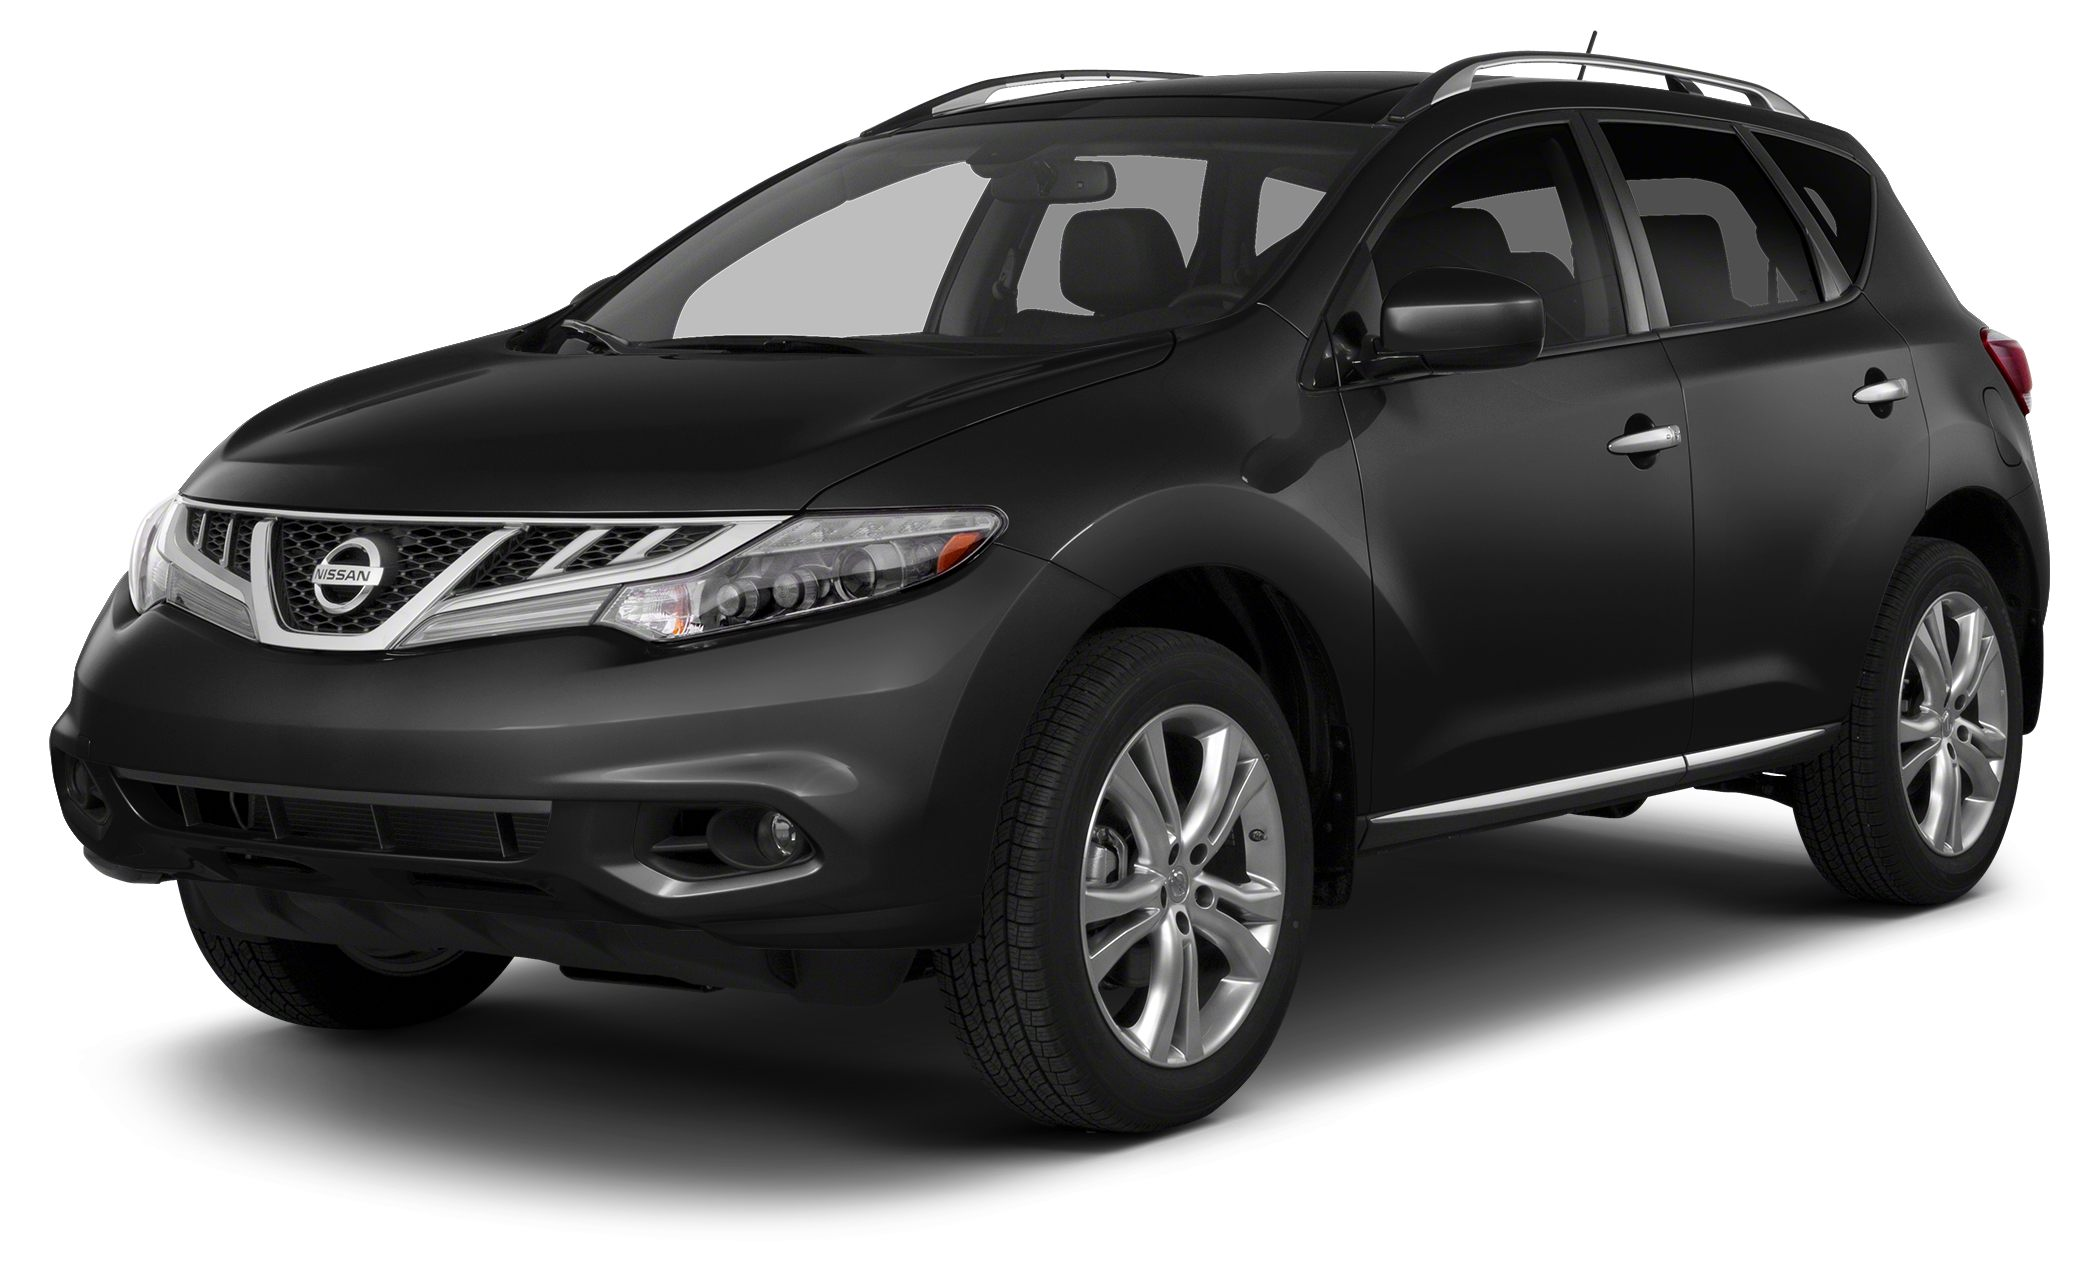 2014 Nissan Murano  You wont find a better SUV than this quality Nissan Climb into this able Mur